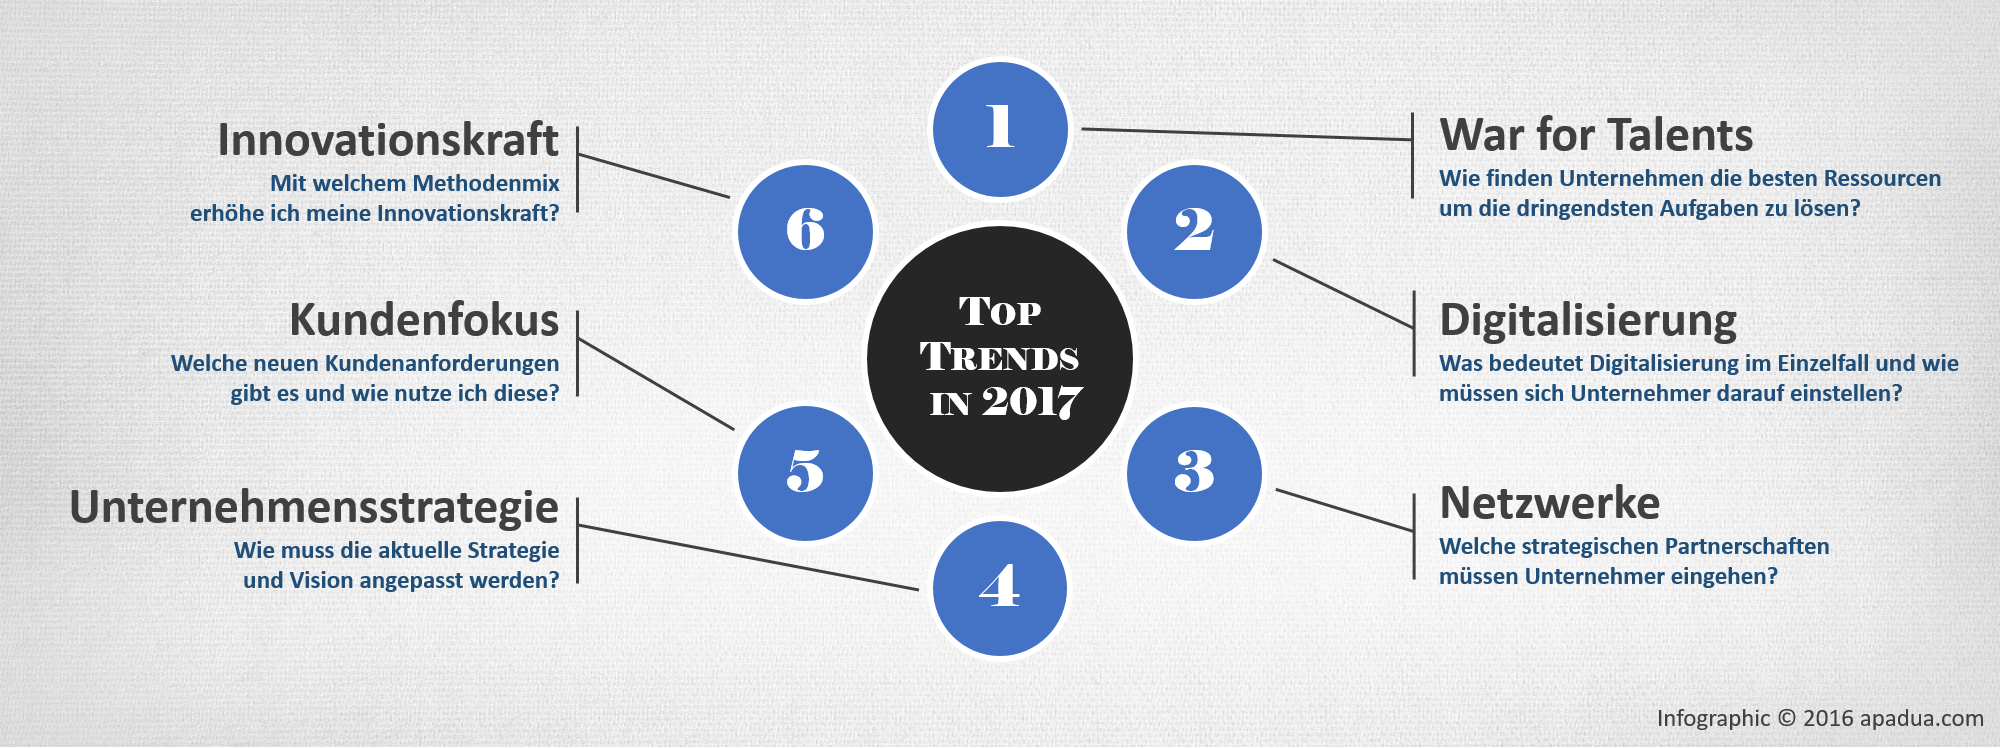 toptrends2017